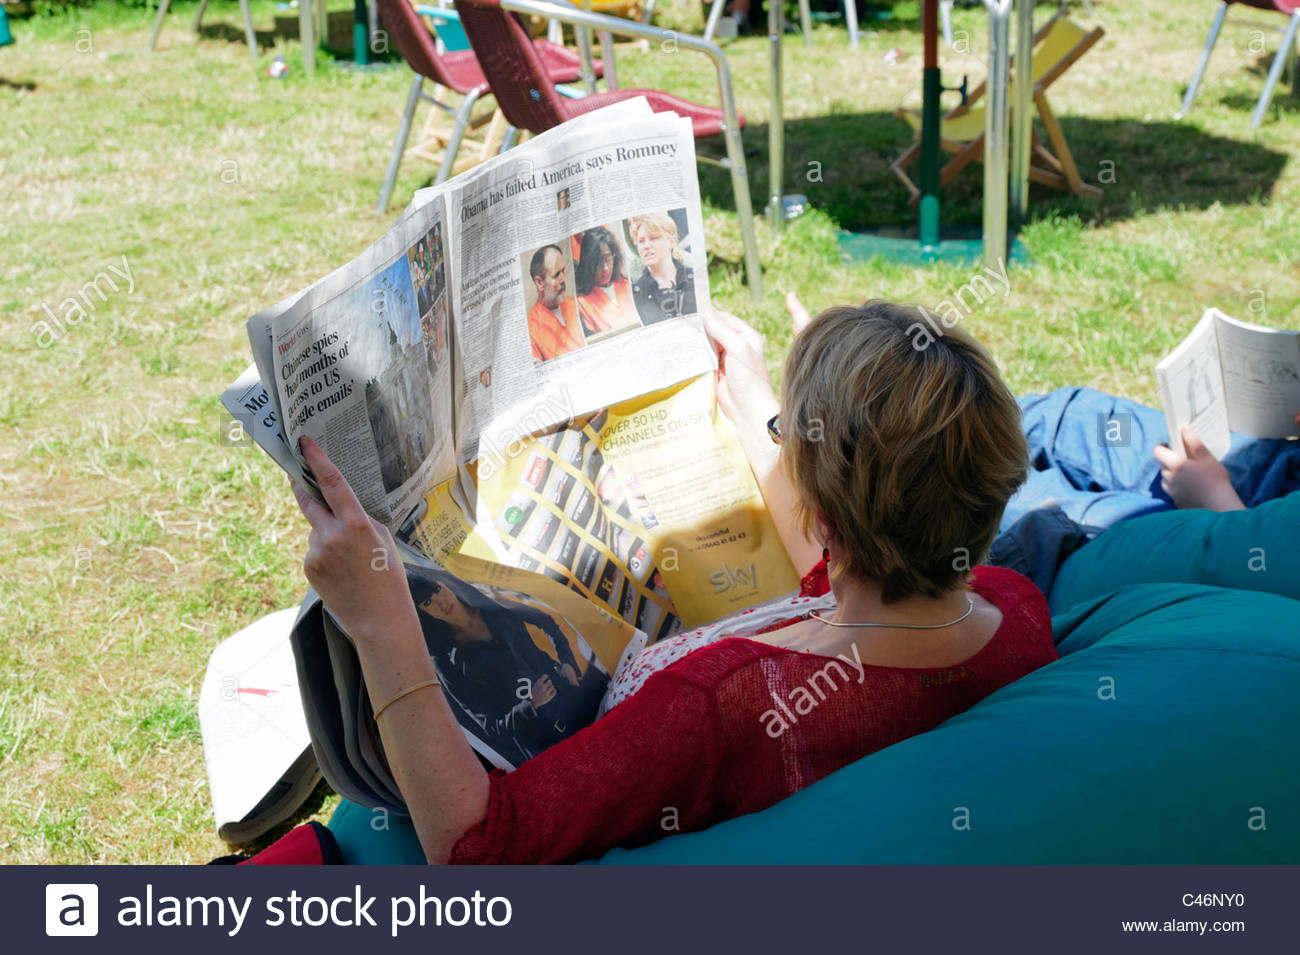 Hay on Wye, Wales, UK. Hay festival woman sitting on bean bag reading a newspaper. Stock Photo